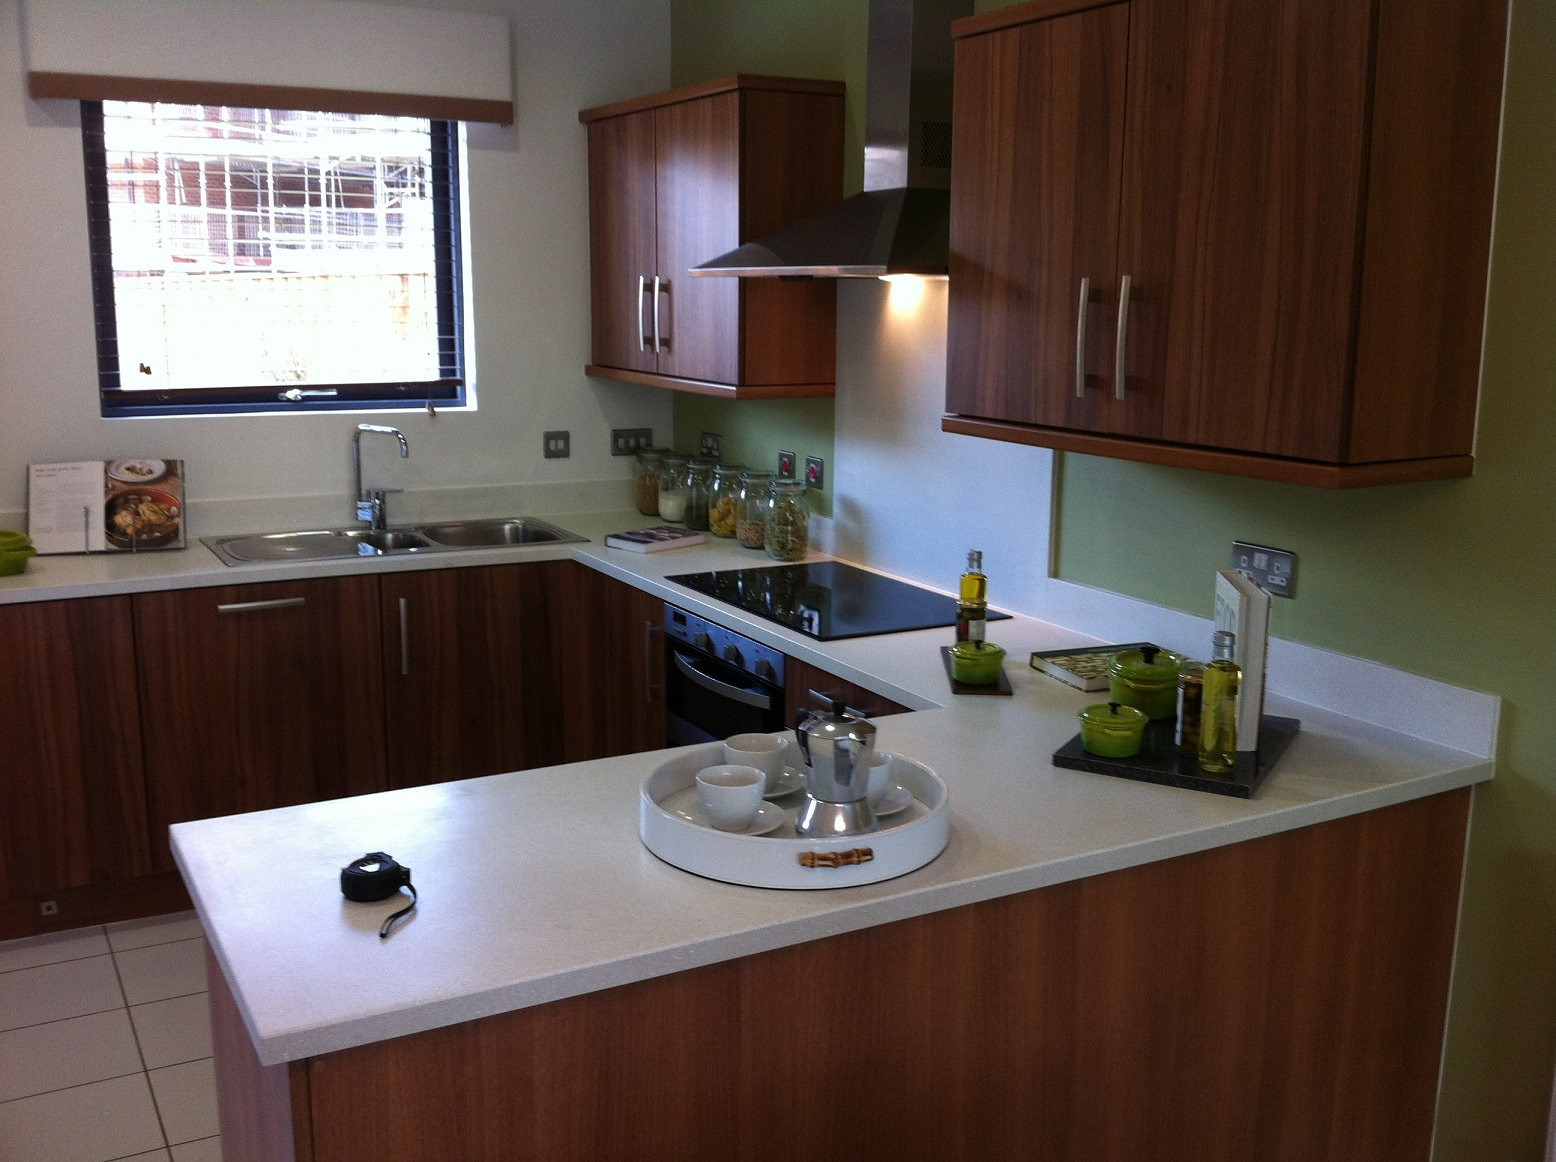 We supply Marble Worktops, Granite Worktops and Quartz Worktops in the Hull Area. We supply Marble Worktops, Granite Worktops and Quartz Worktops in the Scunthopre Area. We supply Marble Worktops, Granite Worktops and Quartz Worktops in the Brigg Area. We supply Marble Worktops, Granite Worktops and Quartz Worktops in the Grimsby Area. We supply Marble Worktops, Granite Worktops and Quartz Worktops in the Doncaster Area. We supply Marble Worktops, Granite Worktops and Quartz Worktops in the Lincoln Area. We supply Marble Worktops, Granite Worktops and Quartz Worktops in the Winterton Area. We supply Marble Worktops, Granite Worktops and Quartz Worktops in the Selby Area. We supply Marble Worktops, Granite Worktops and Quartz Worktops in the Goole Area. We supply Marble Worktops, Granite Worktops and Quartz Worktops in the Beverly Area. We supply Marble Worktops, Granite Worktops and Quartz Worktops in the Cotttingham Area. We supply Marble Worktops, Granite Worktops and Quartz Worktops in the Barton Area.